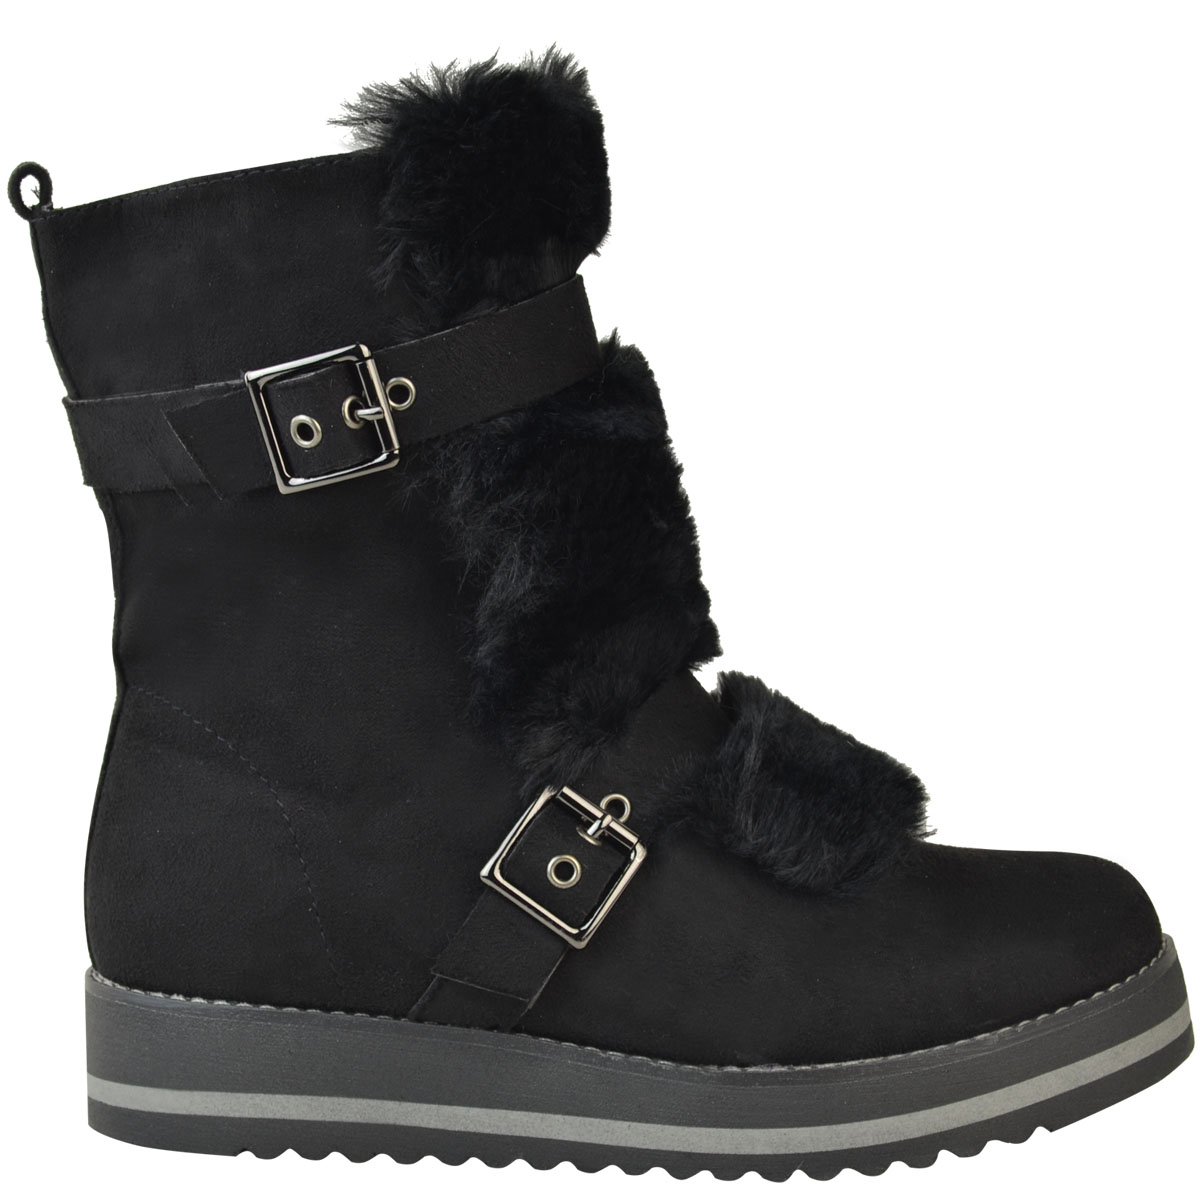 Womens-Ladies-Low-Wedge-Flat-Winter-Snow-Ankle-Boots-Fleece-Lining-Shoes-Size